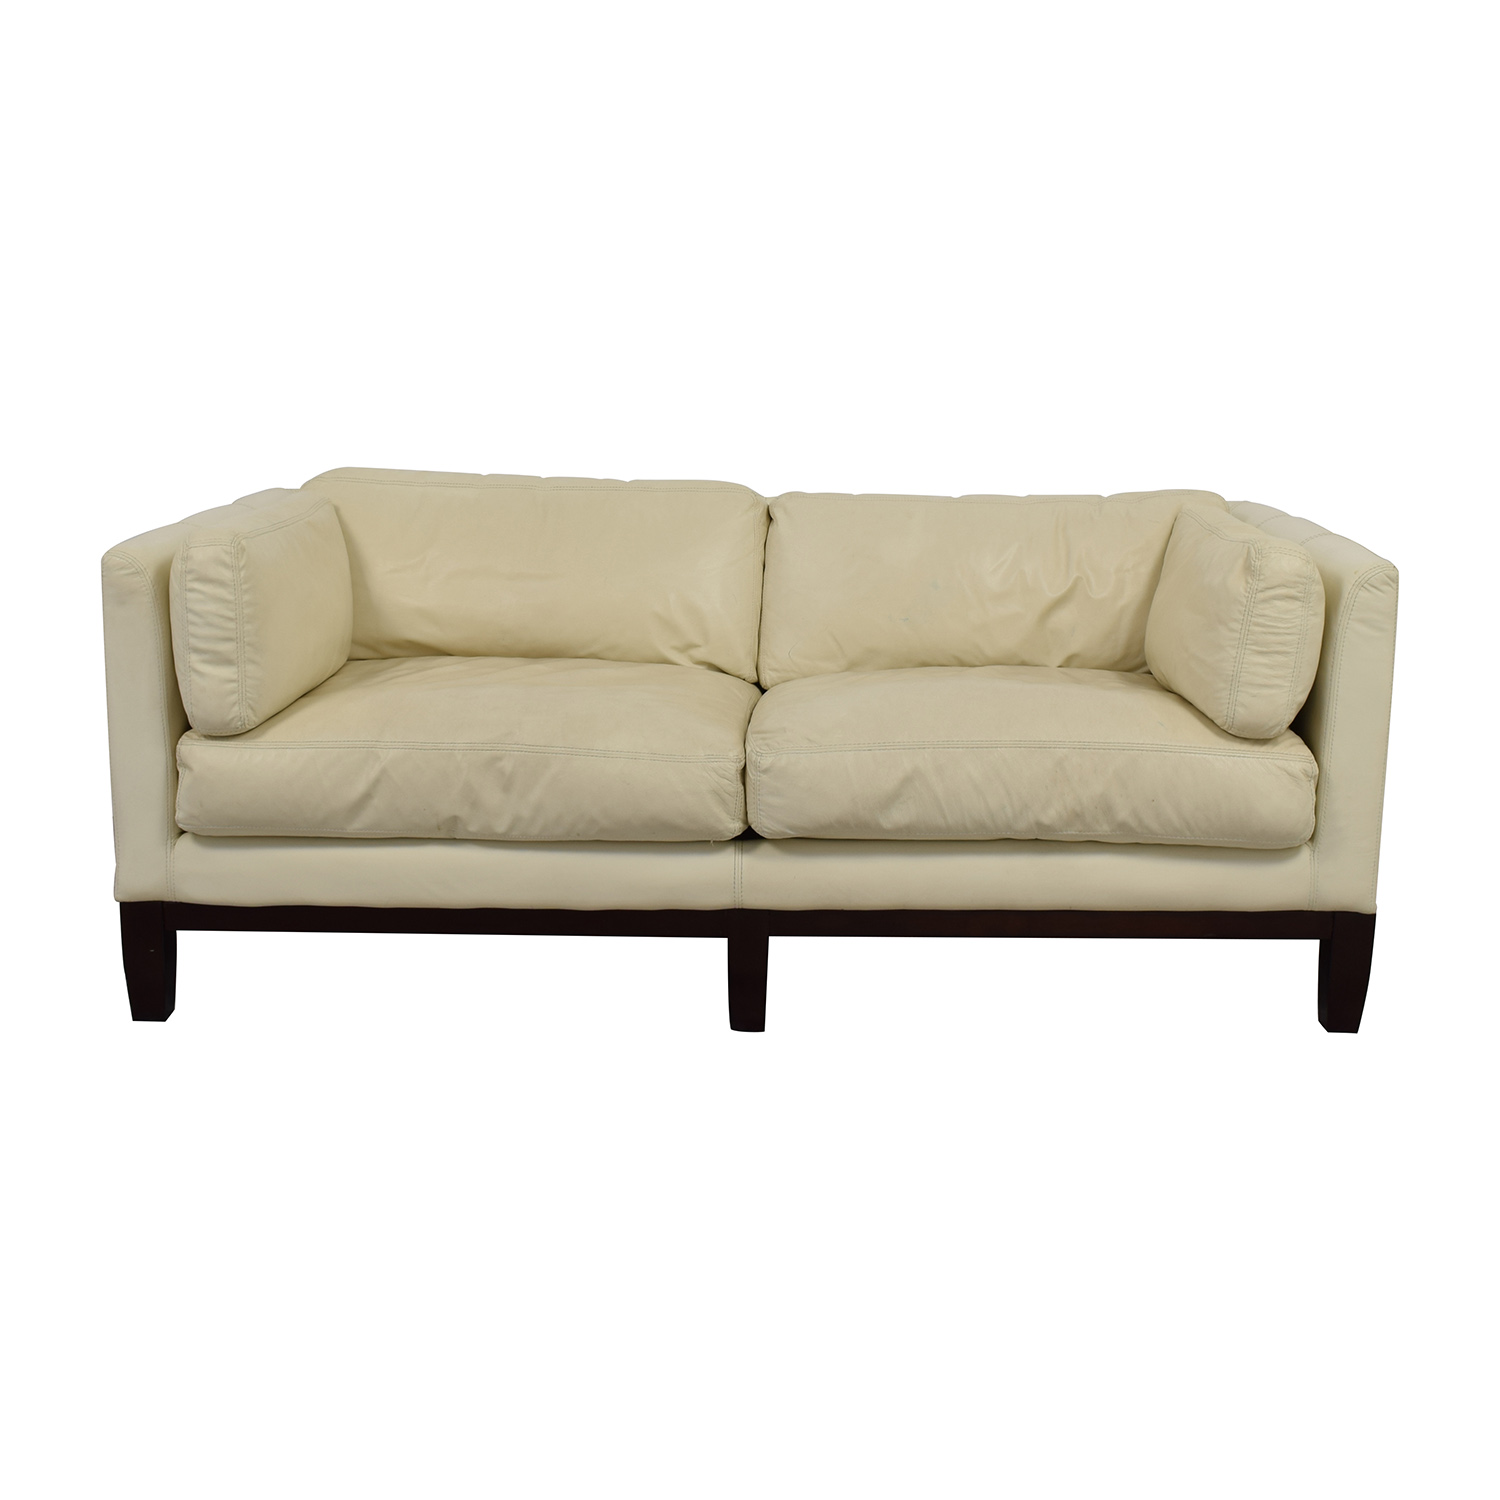 72 Off Decoro White Leather Sofa Sofas